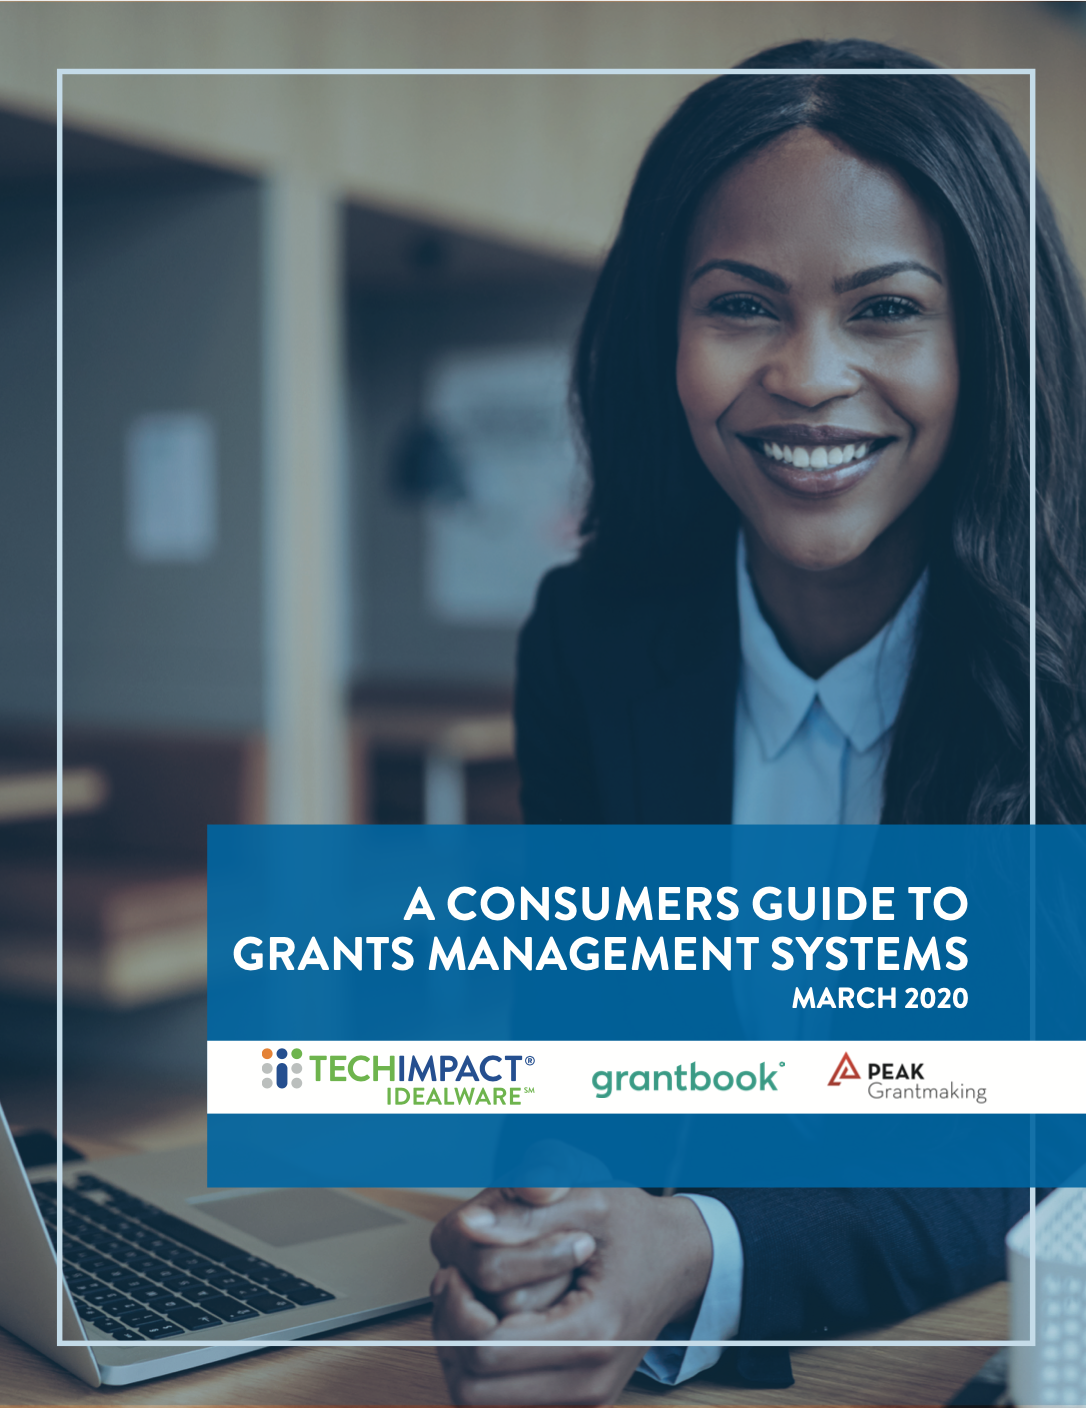 SmartSimple Offers Highest Number of Advanced Features: A Consumers Guide to Grants Management Systems 2020 Edition